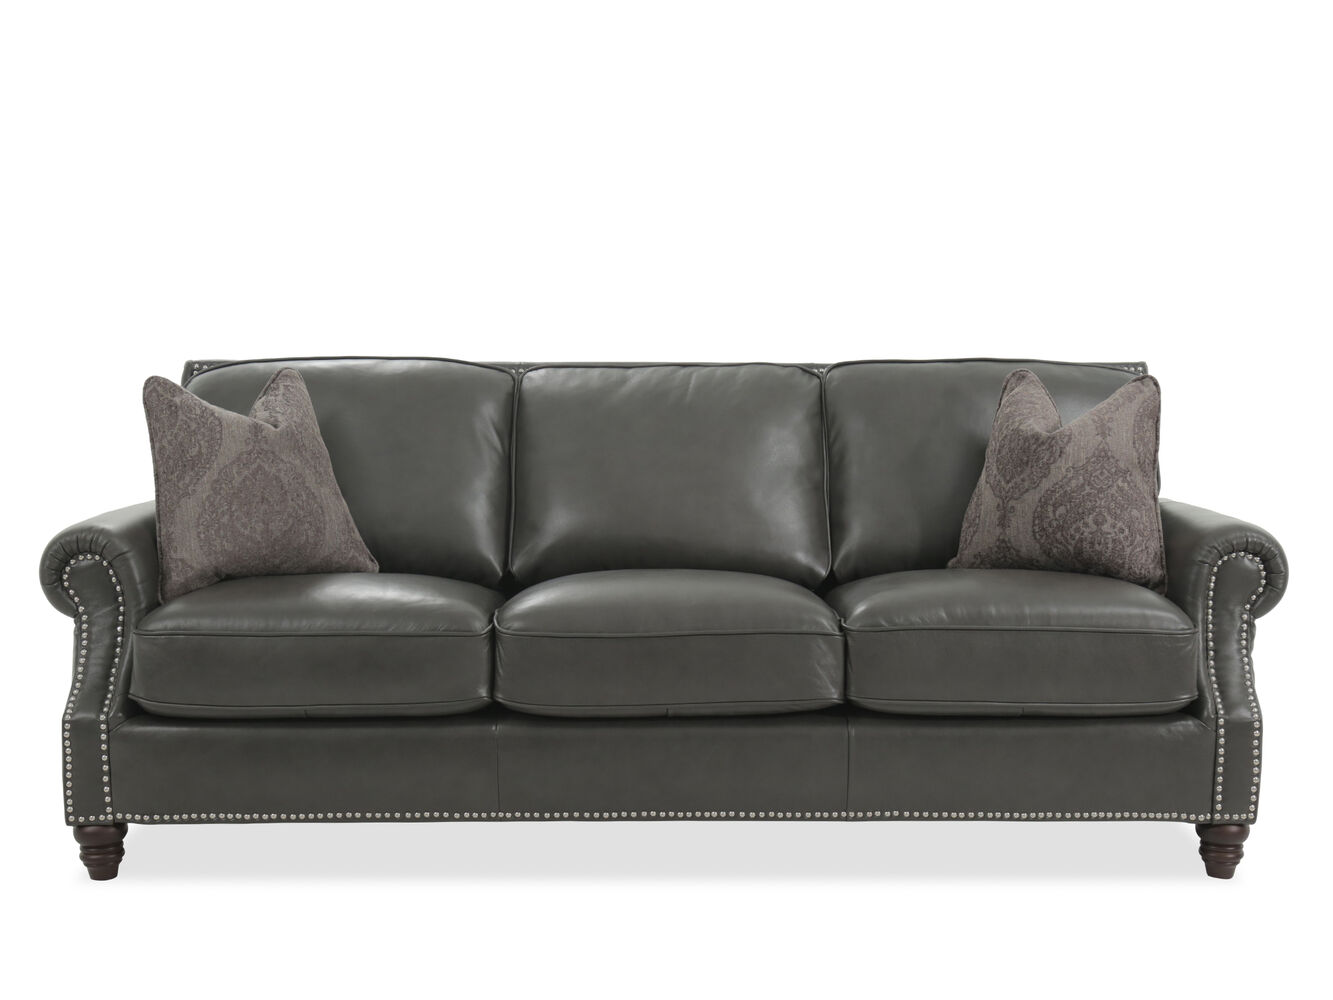 Mathis Brothers Leather Sofas Awesome Mathis Brothers